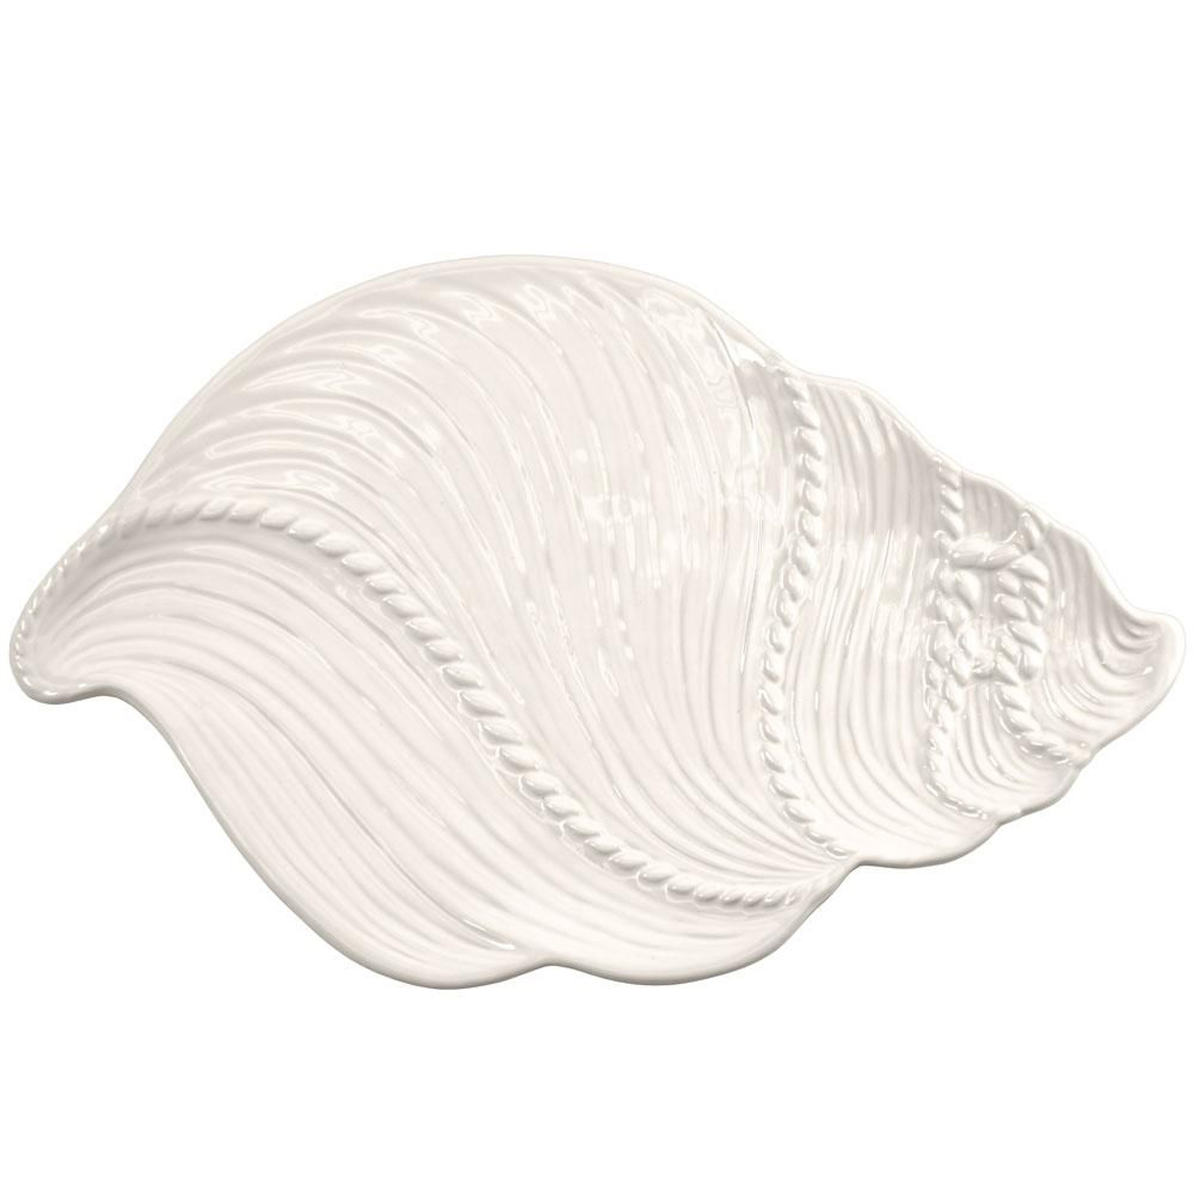 temp-tations® Knotical Platter 18 Inch – Classic White